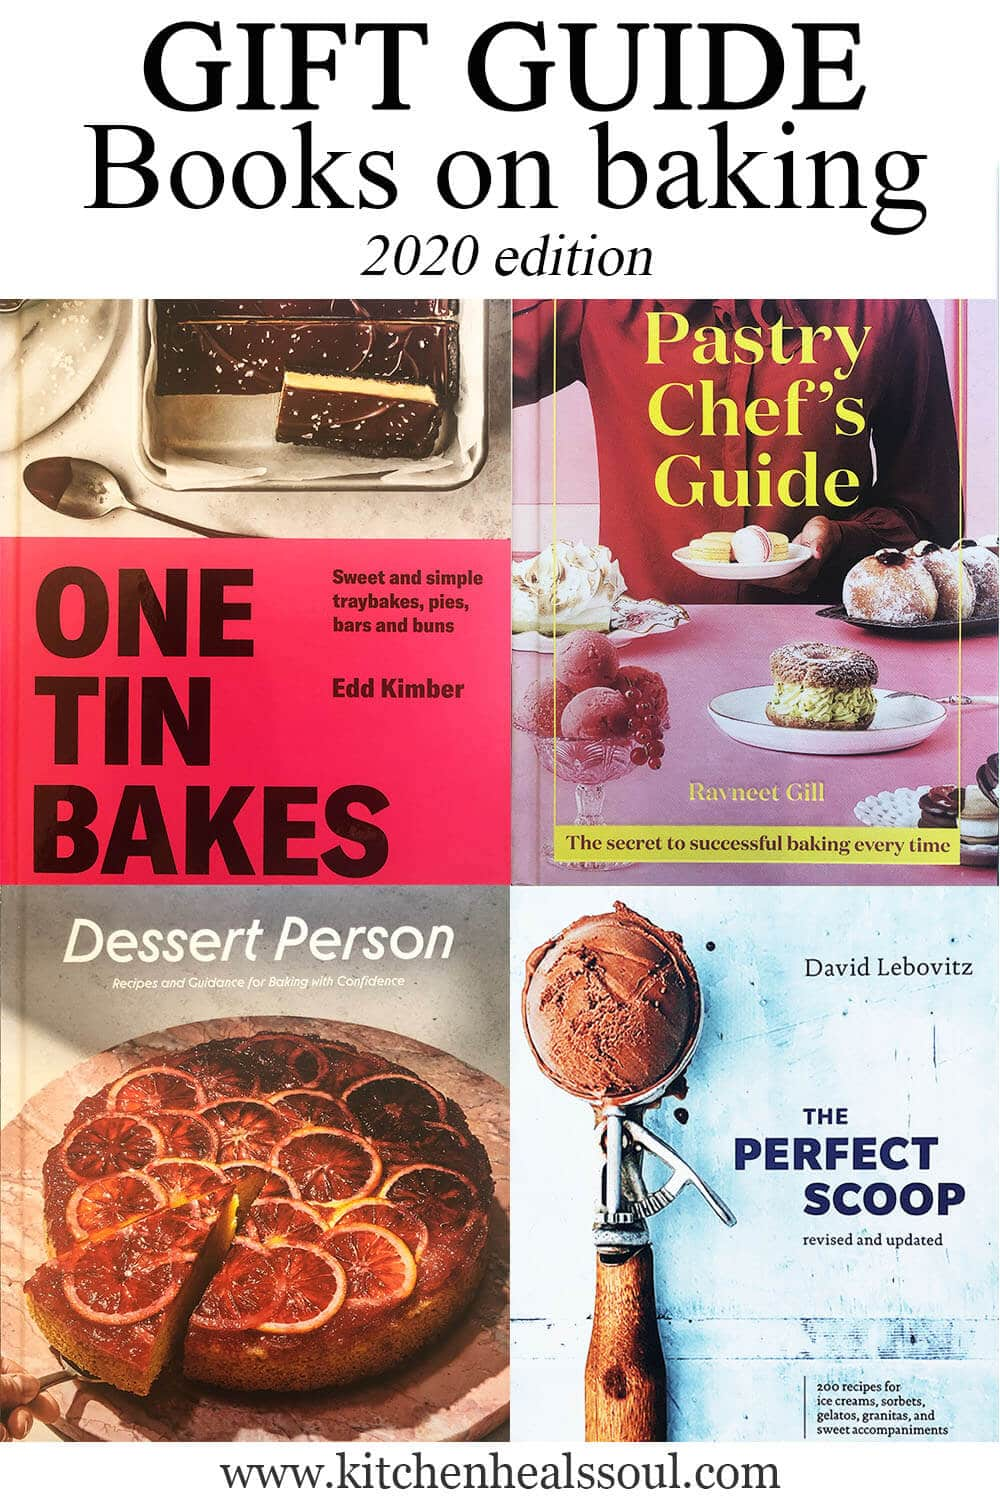 2020 Gift Guide: Books on baking featuring covers of One Tin Bakes, The Pastry Chef's Guide, Dessert Person, and The Perfect Scoop